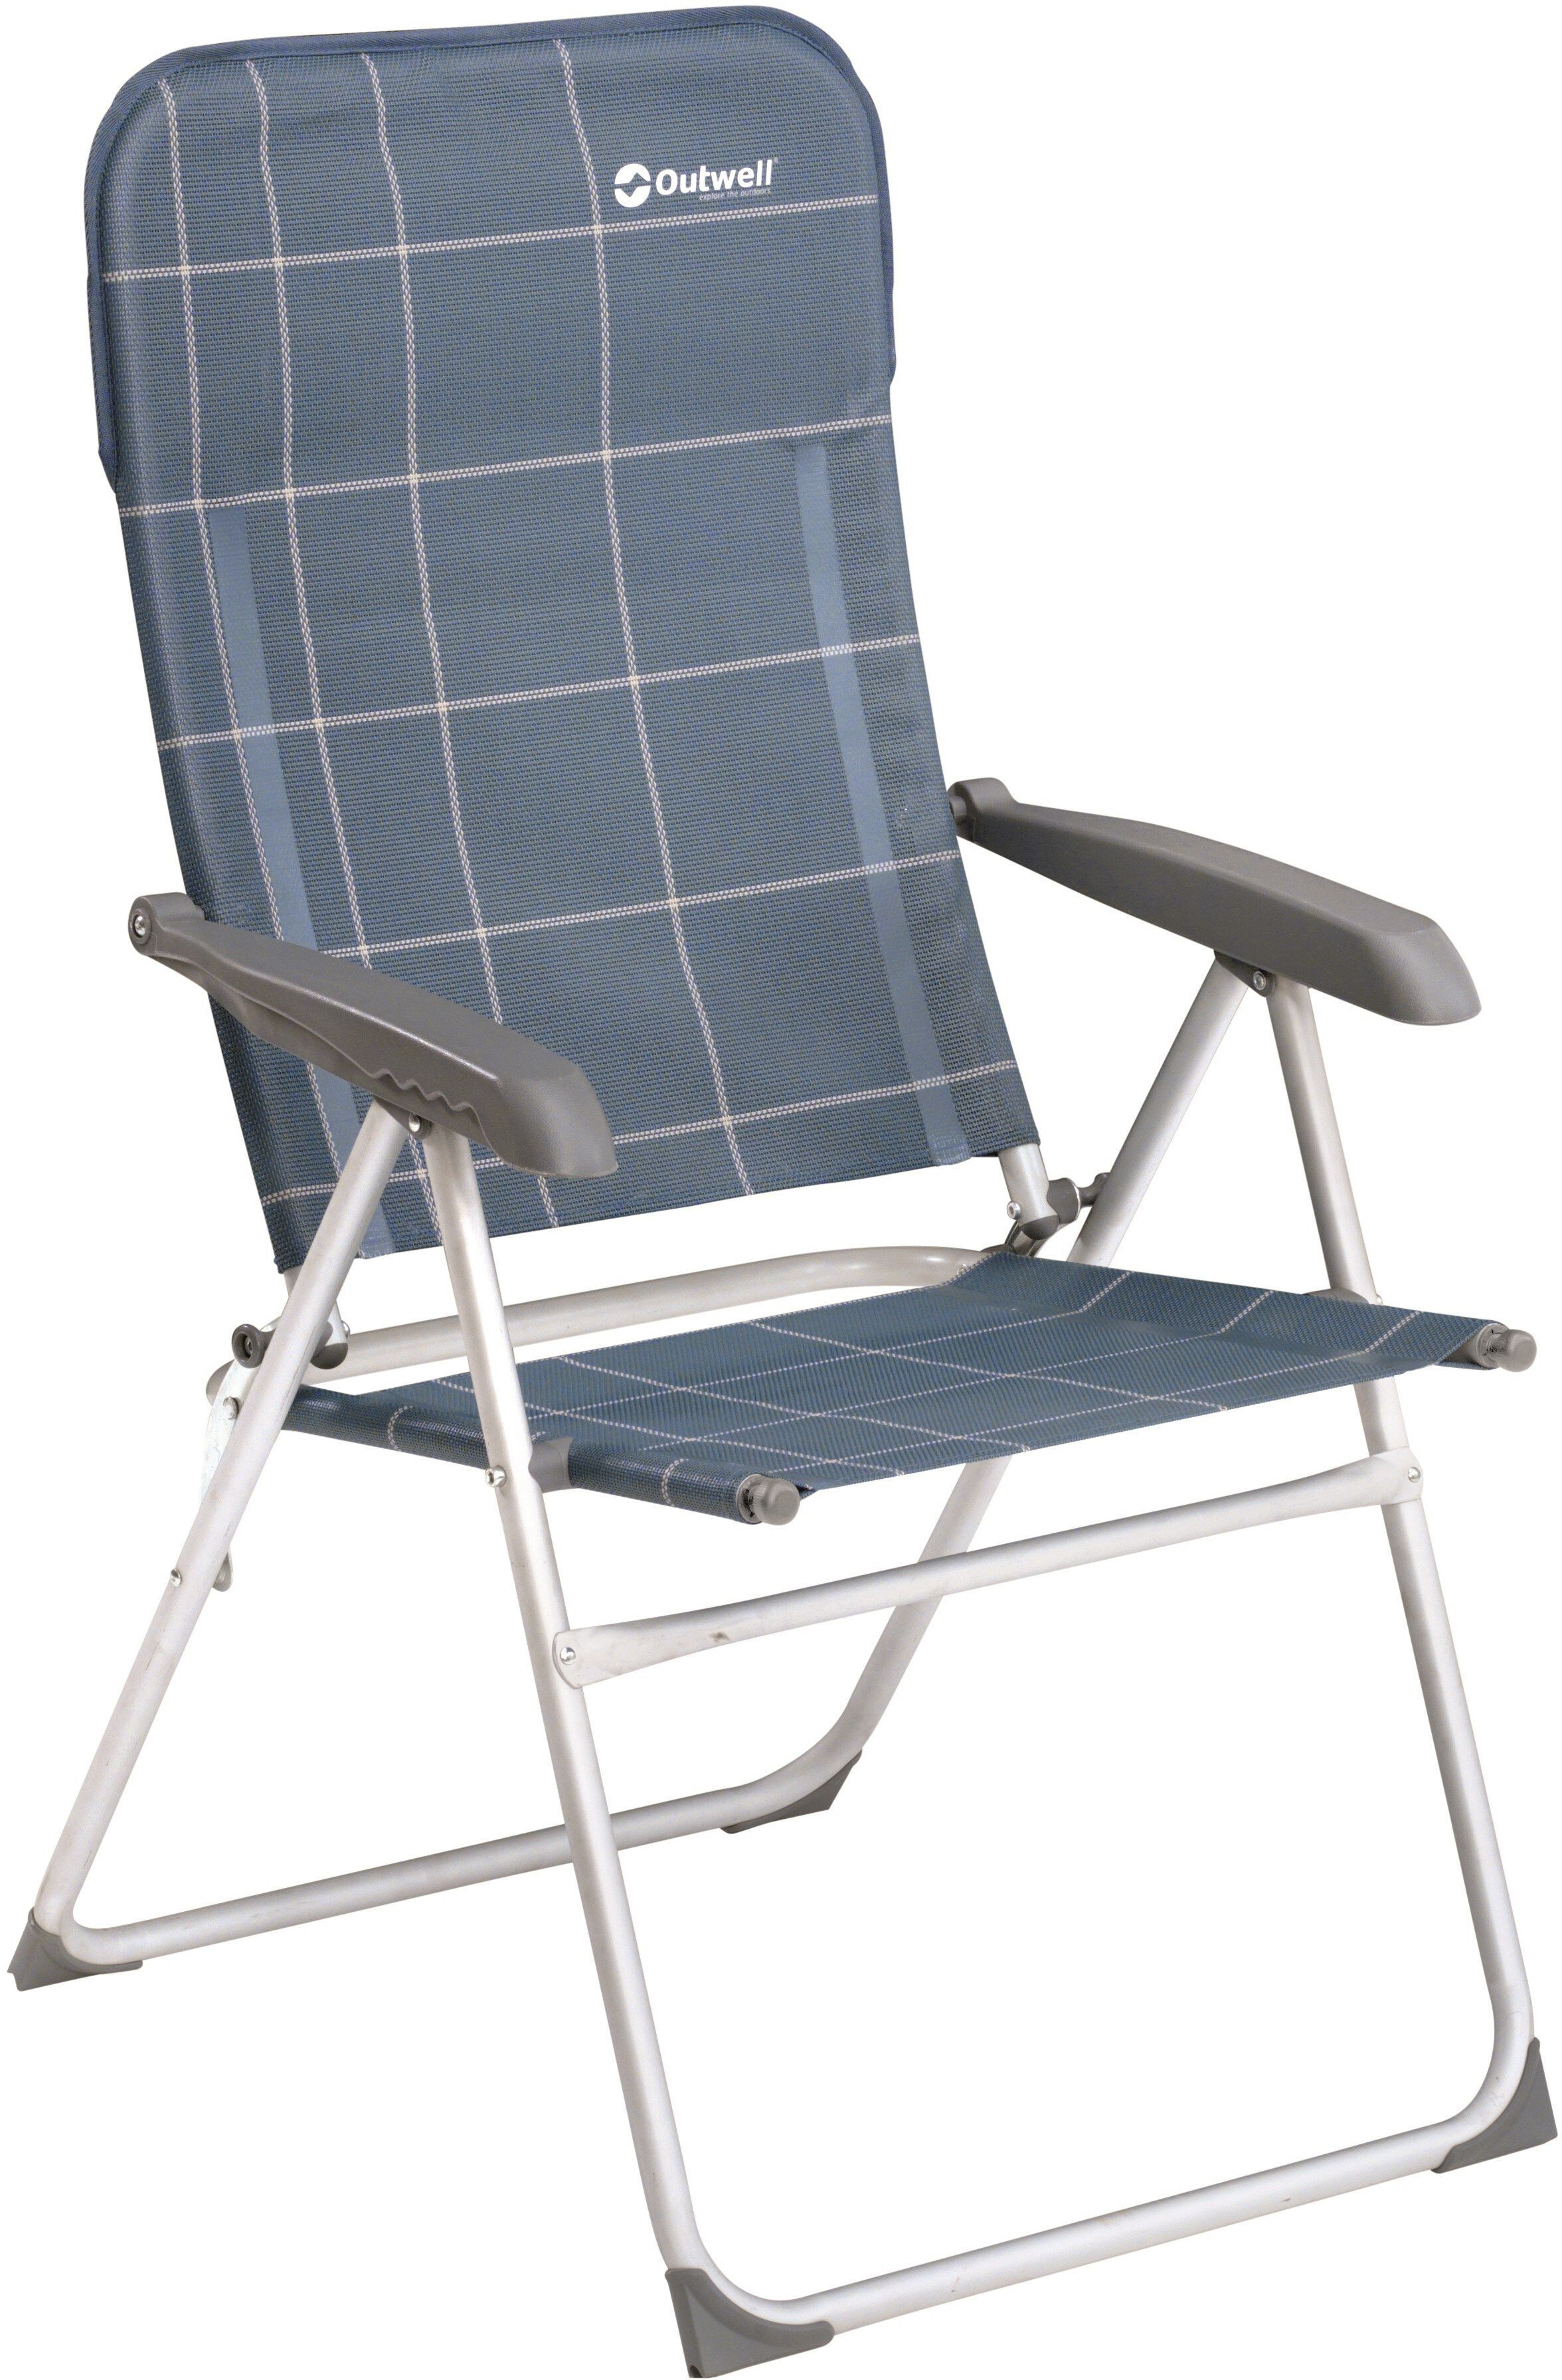 Outwell Fergus Folding Chair At Addnature